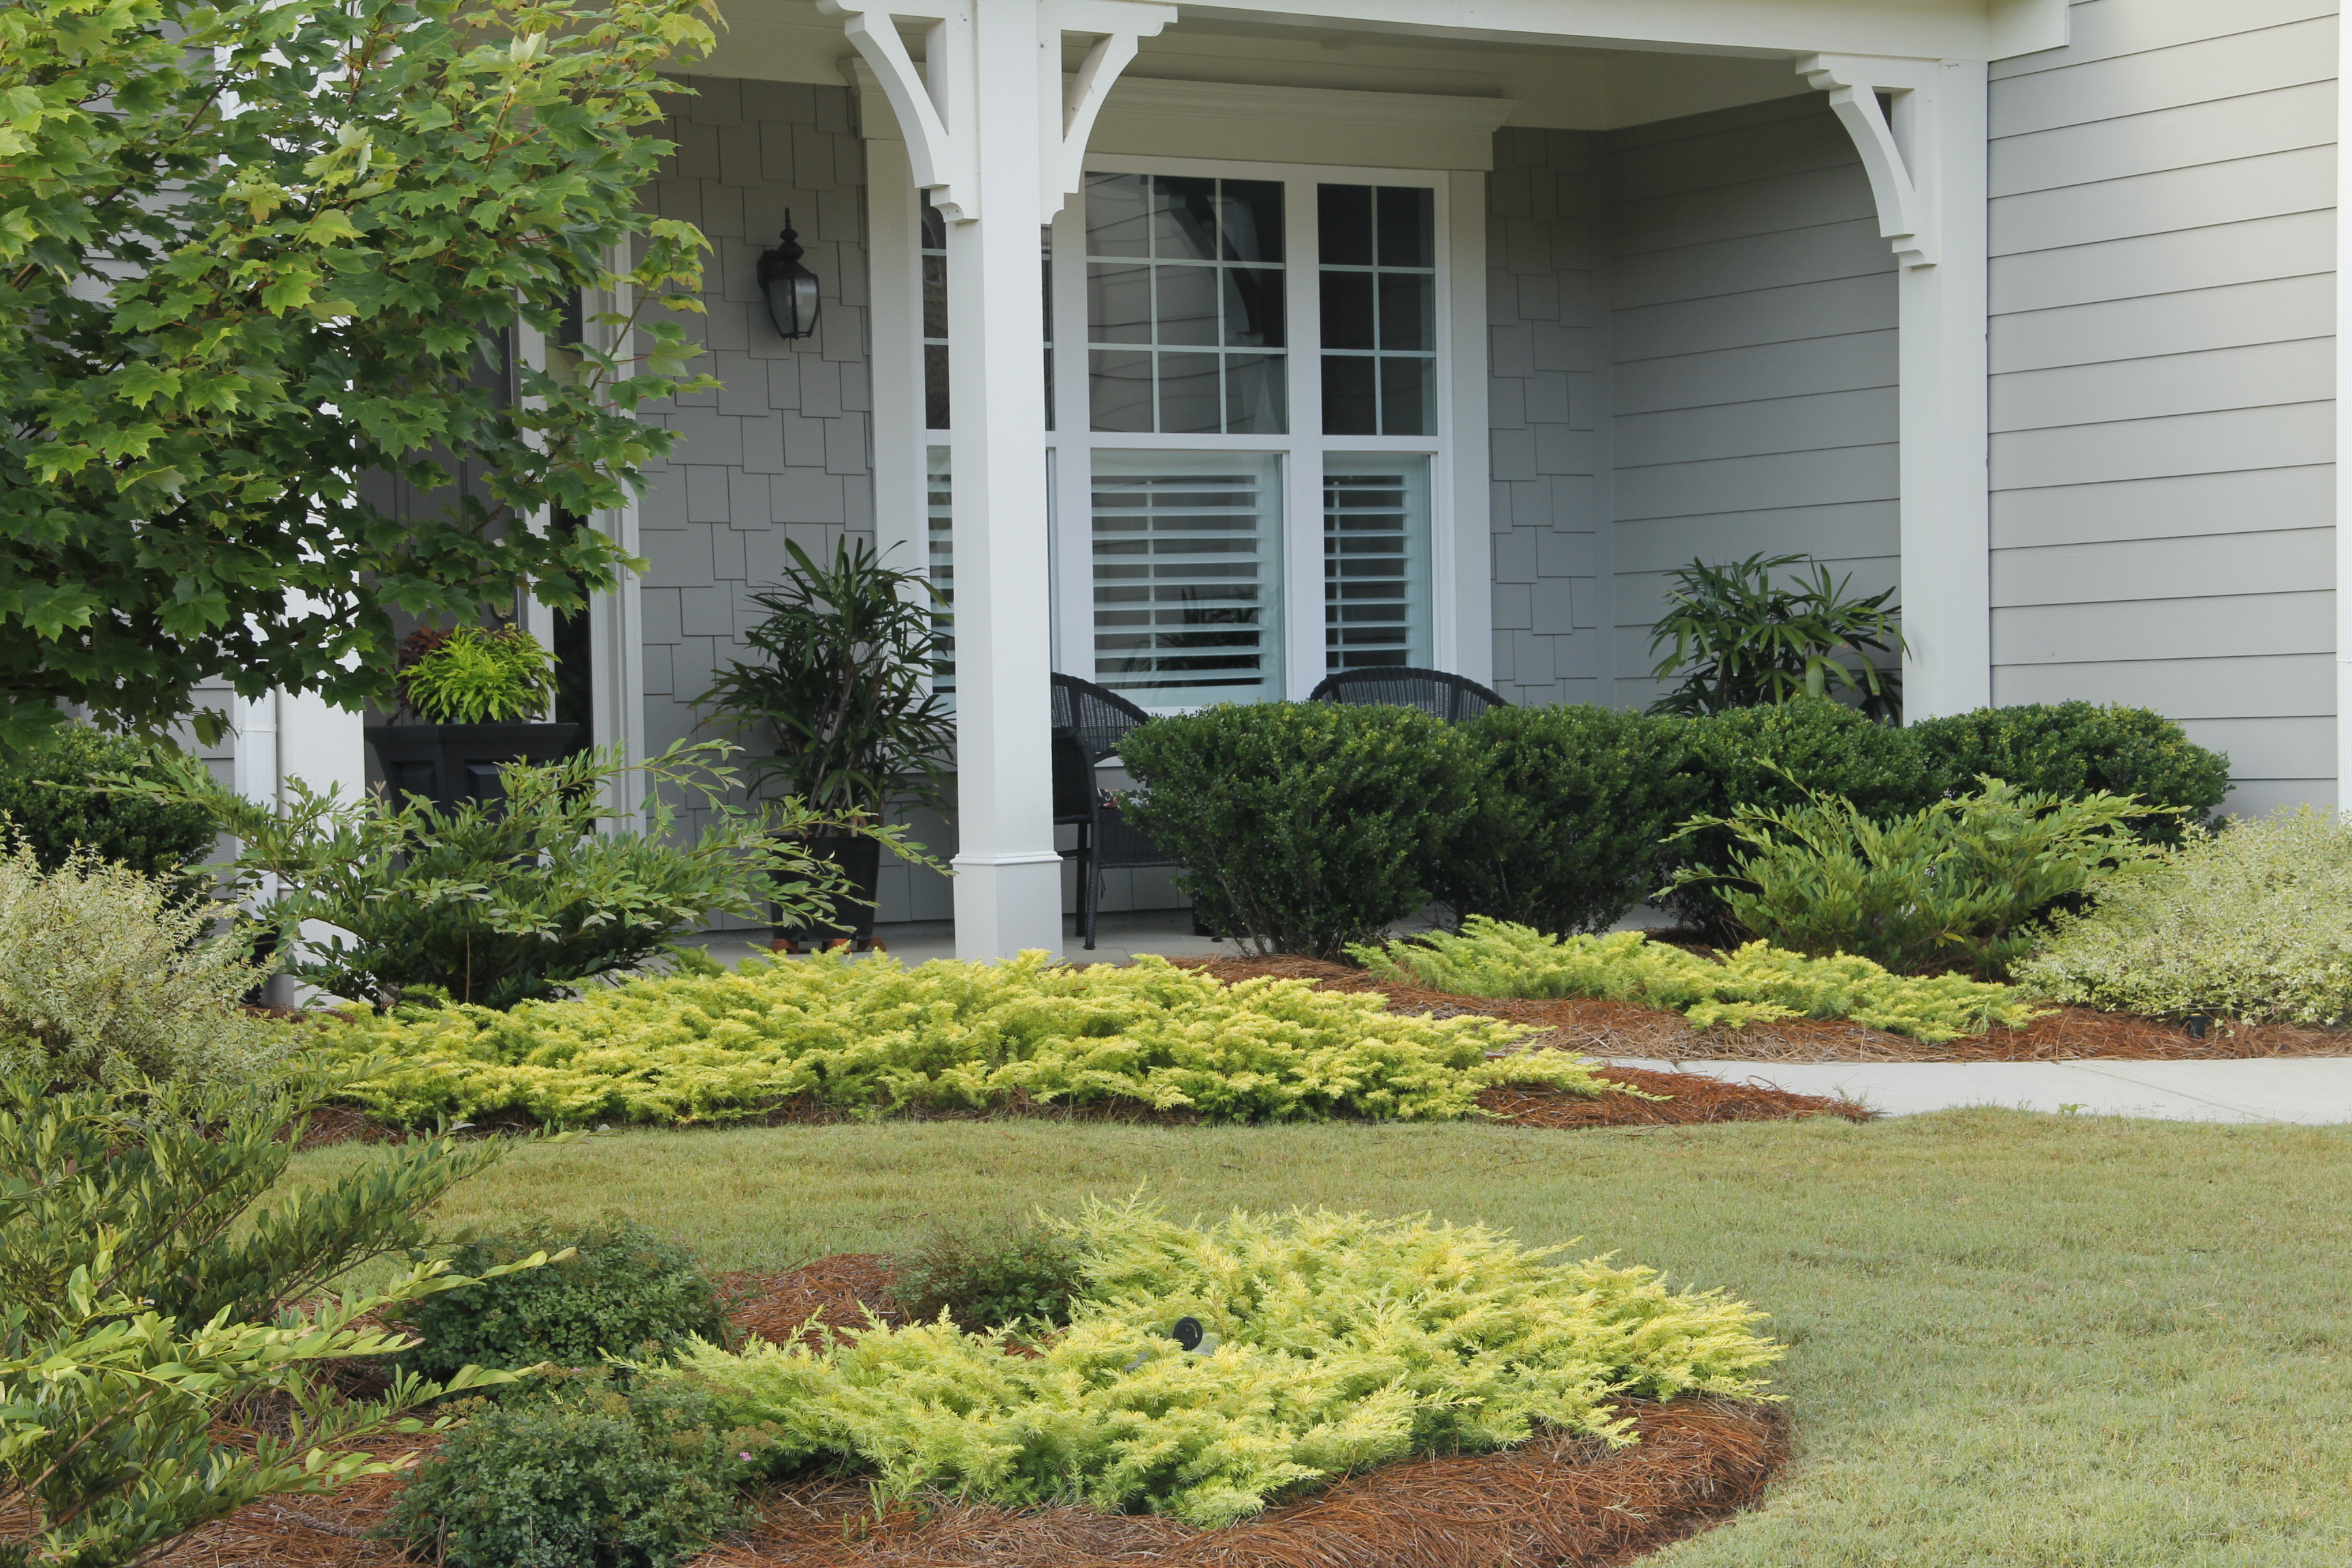 Top local Residential landscaping maintenance companies near me - Front yard Landscaping Ideas IMG 9266